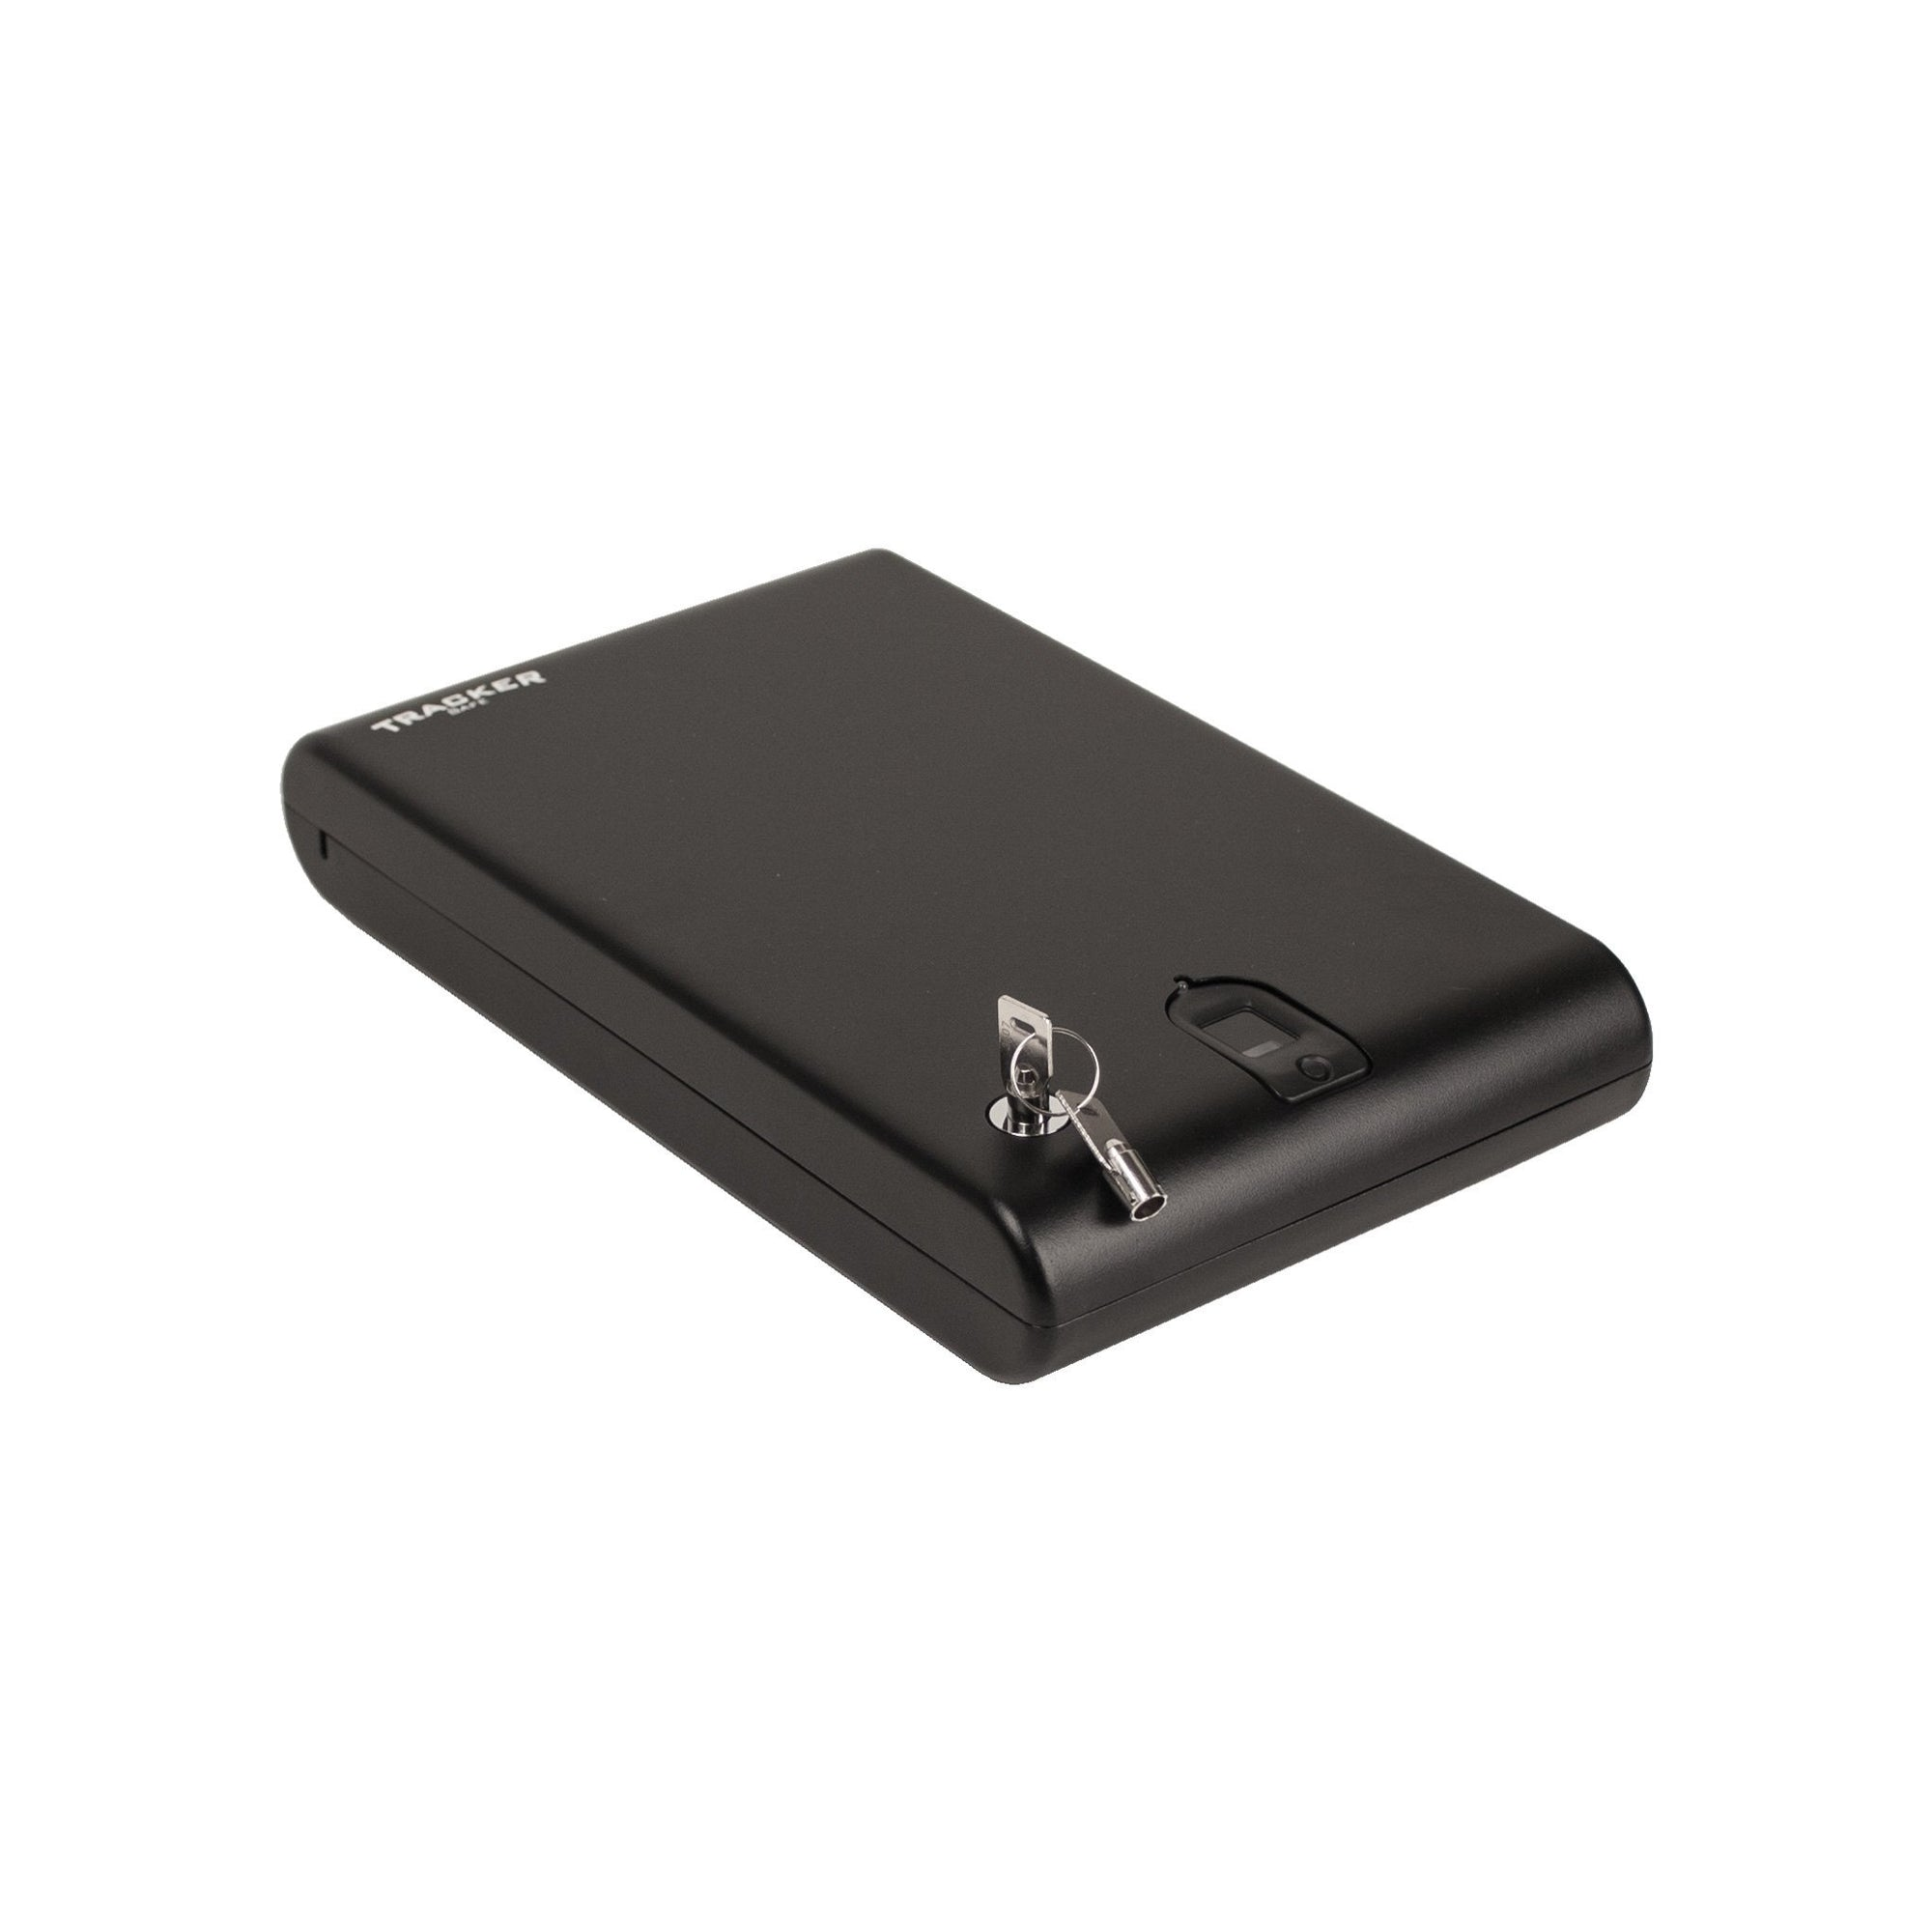 Biometric Handgun Safes - Tracker SPS-04B Small Pistol Safe With Biometric Lock